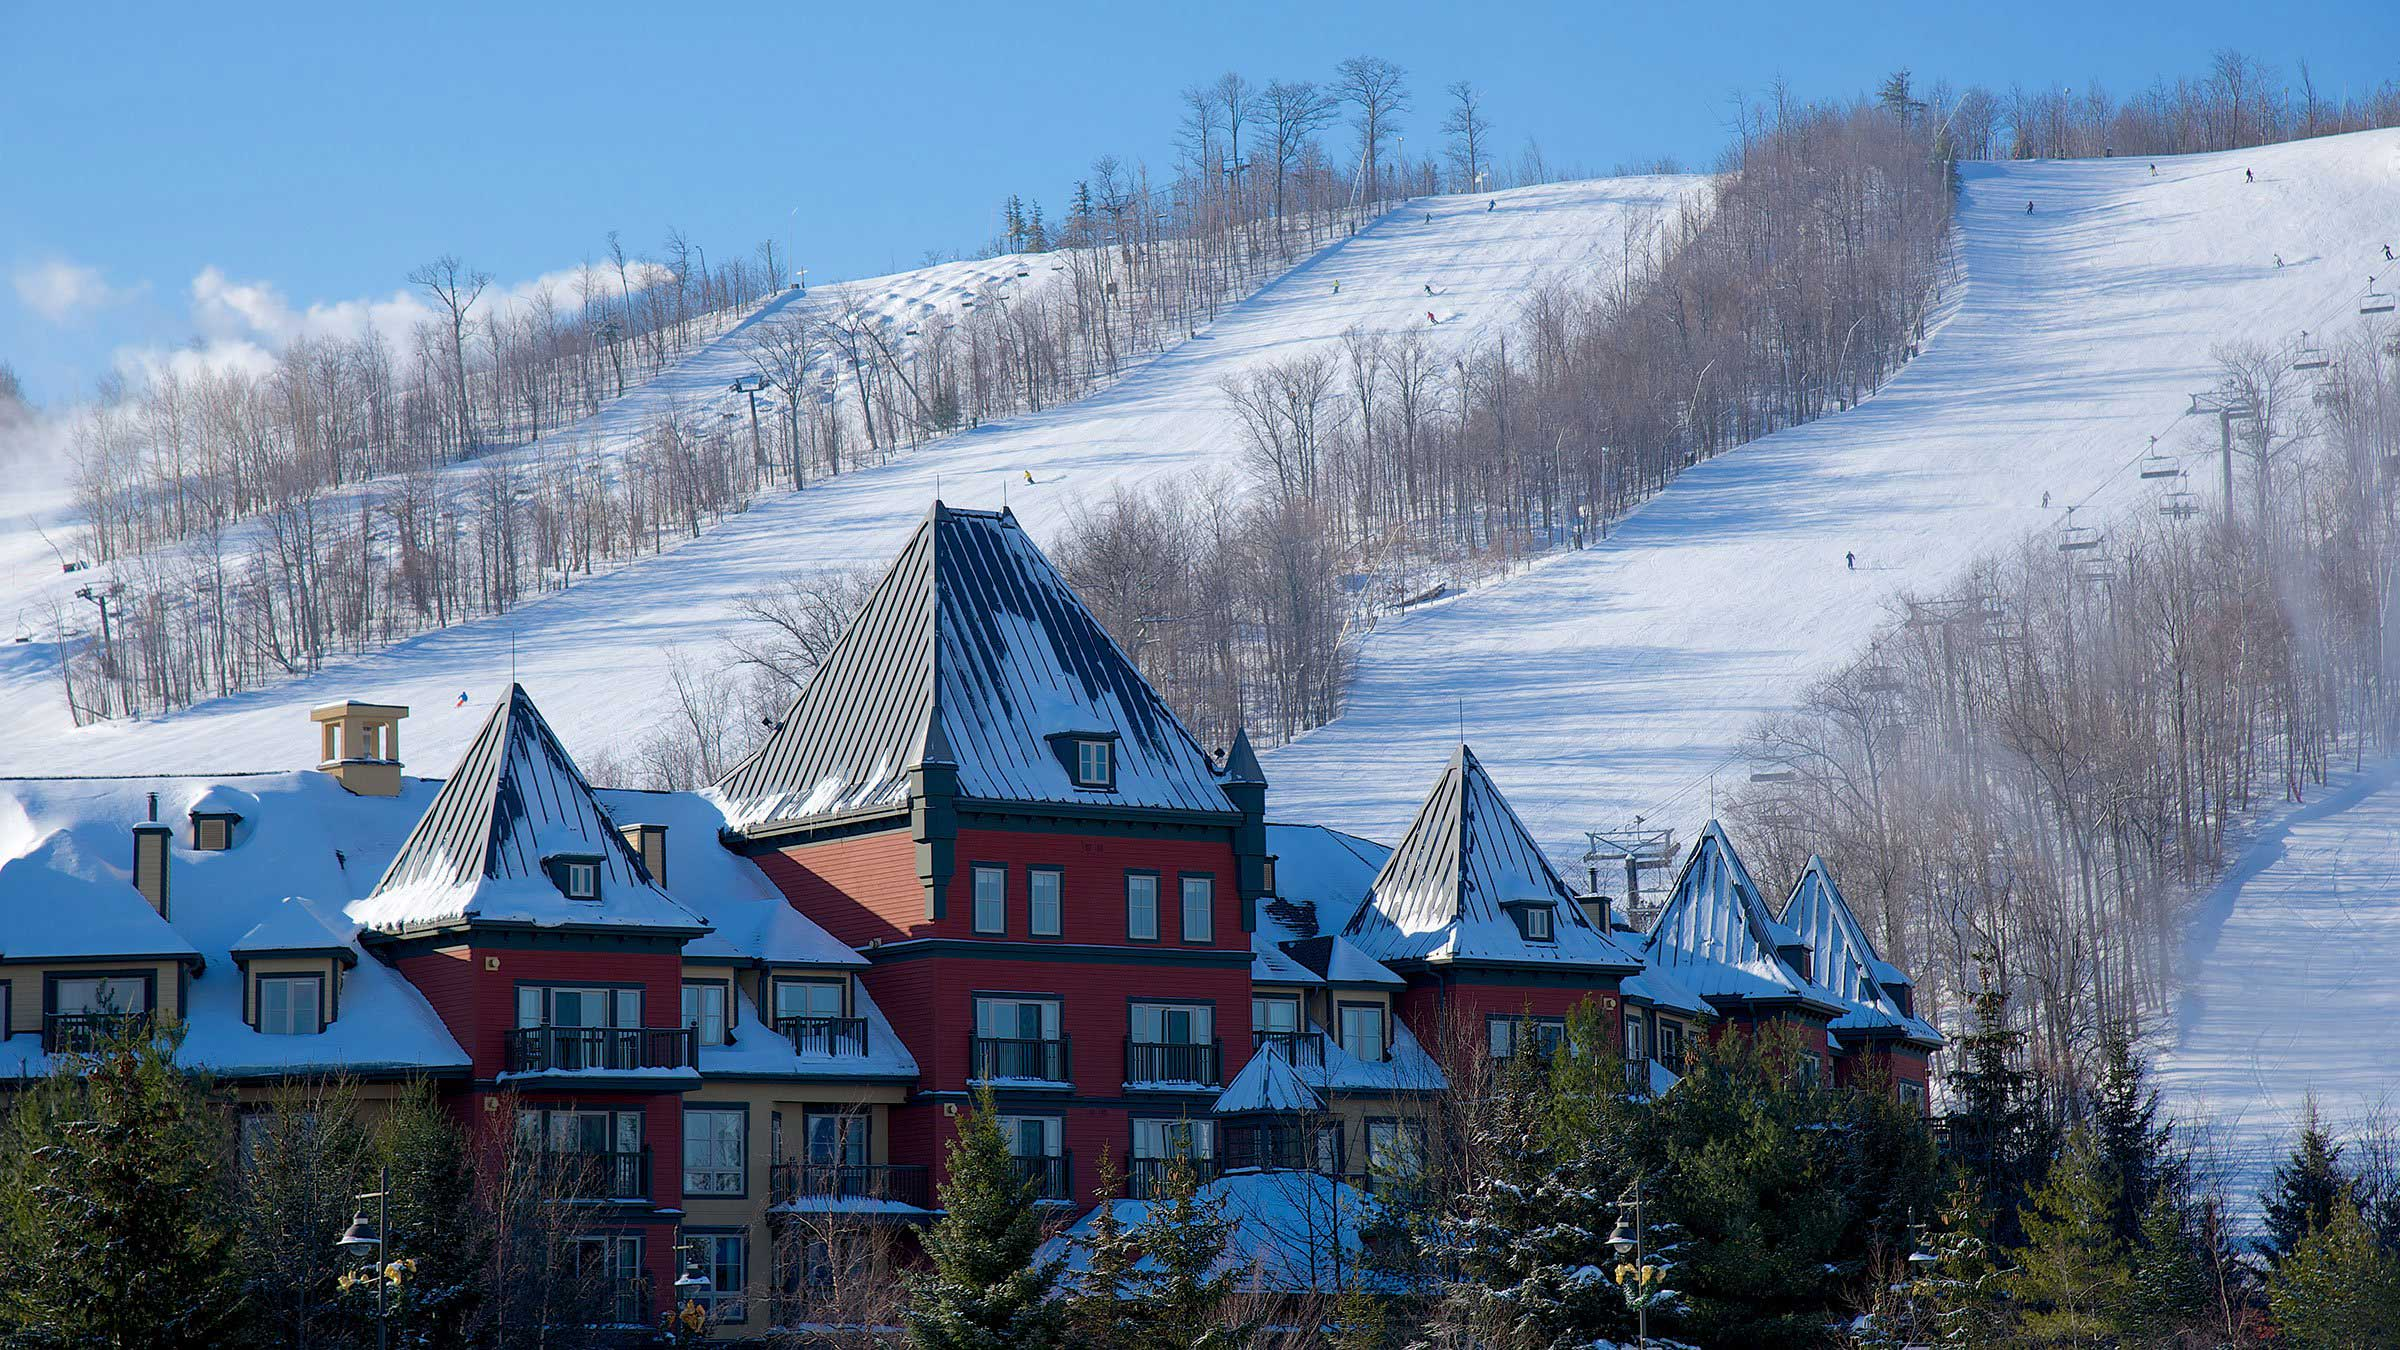 blue mountain resort village 3 bedroom suite – $2,100 (non